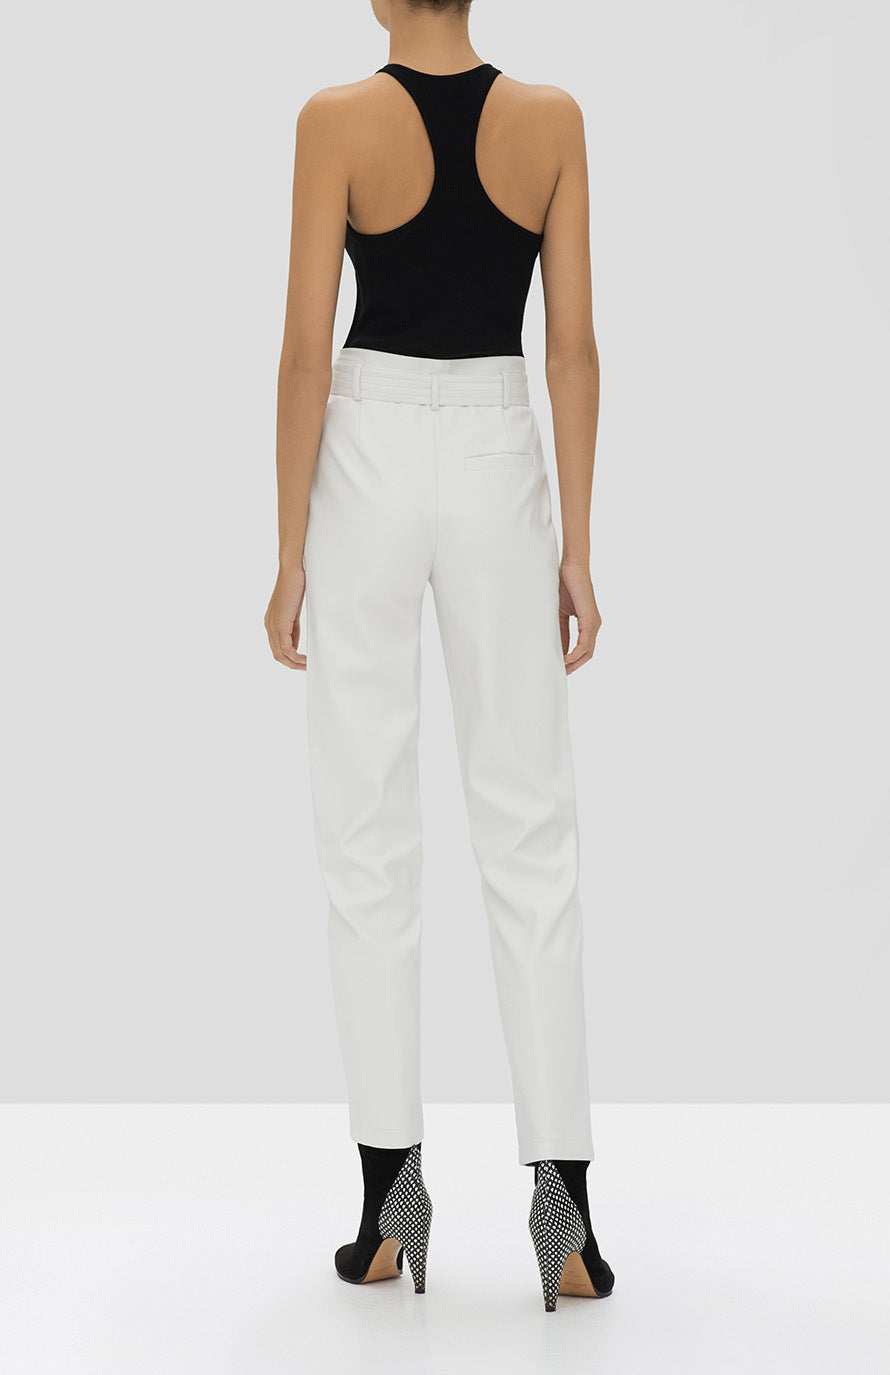 Alexis Zeni Top in Black and Castille Pant in White from the Holiday 2019 Ready To Wear Collection - Rear View